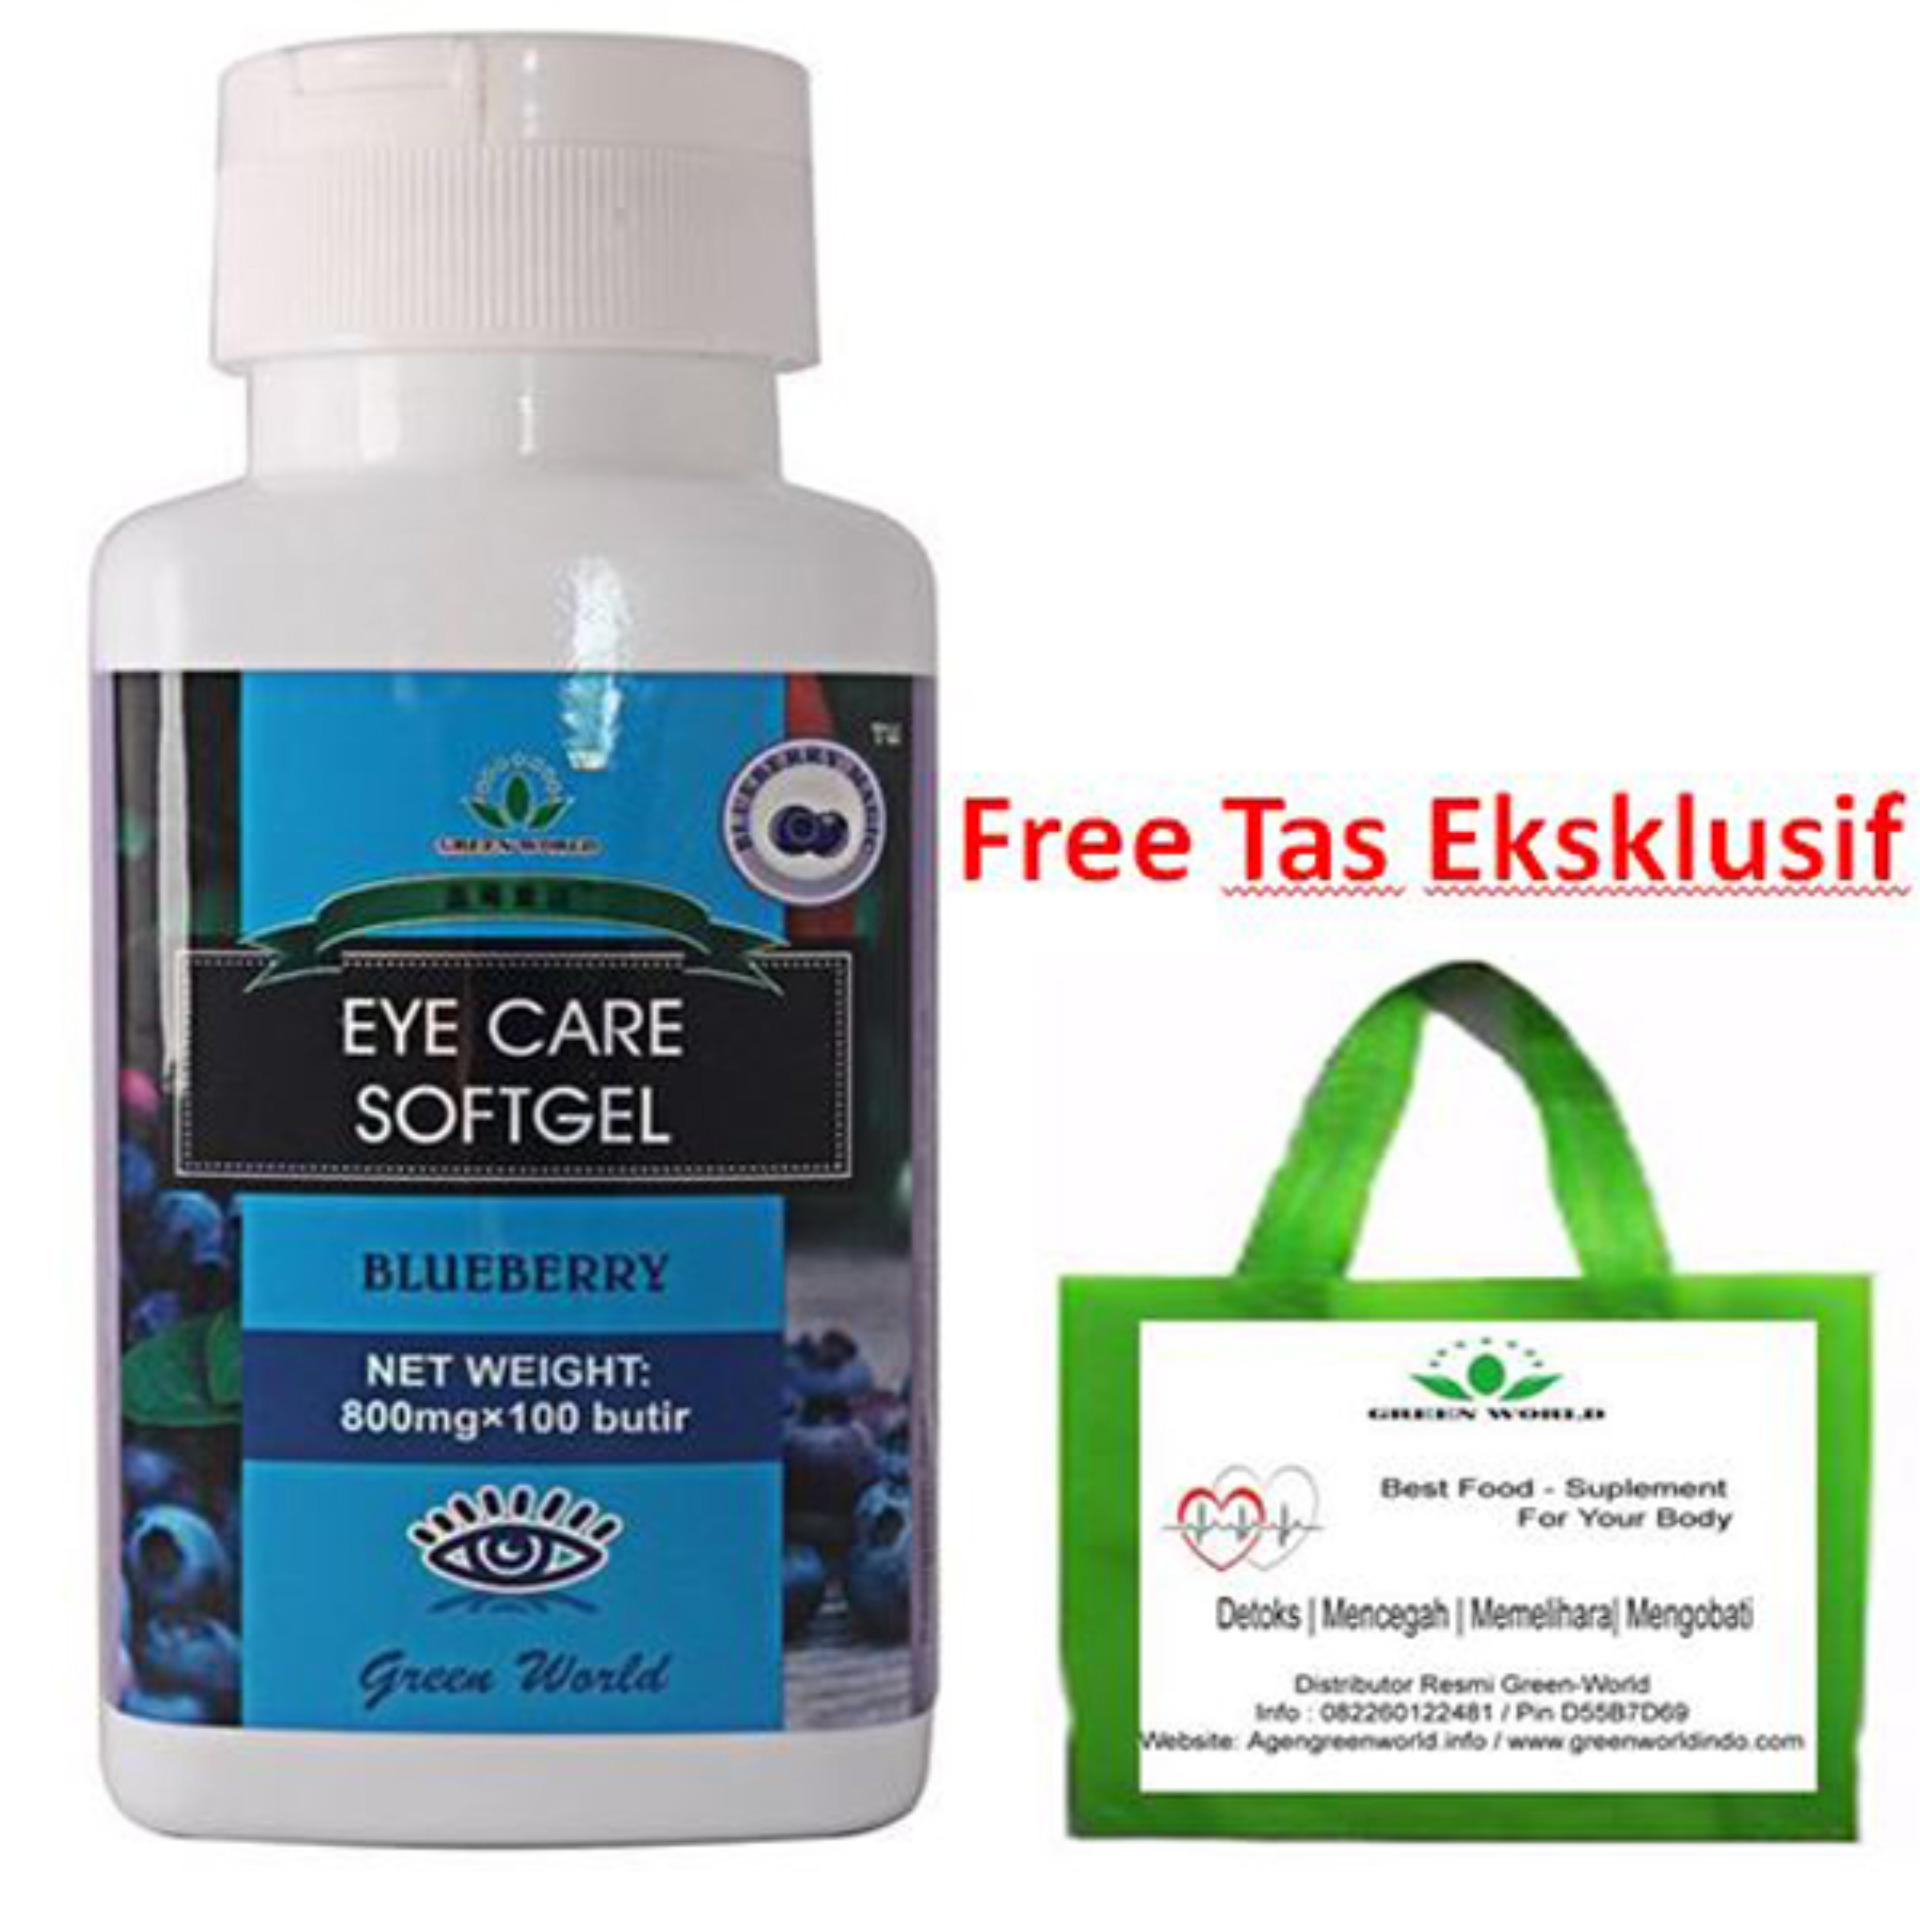 Promo Green World Eye Care Softgel Bonus Tas Ekslusif Green World Terbaru